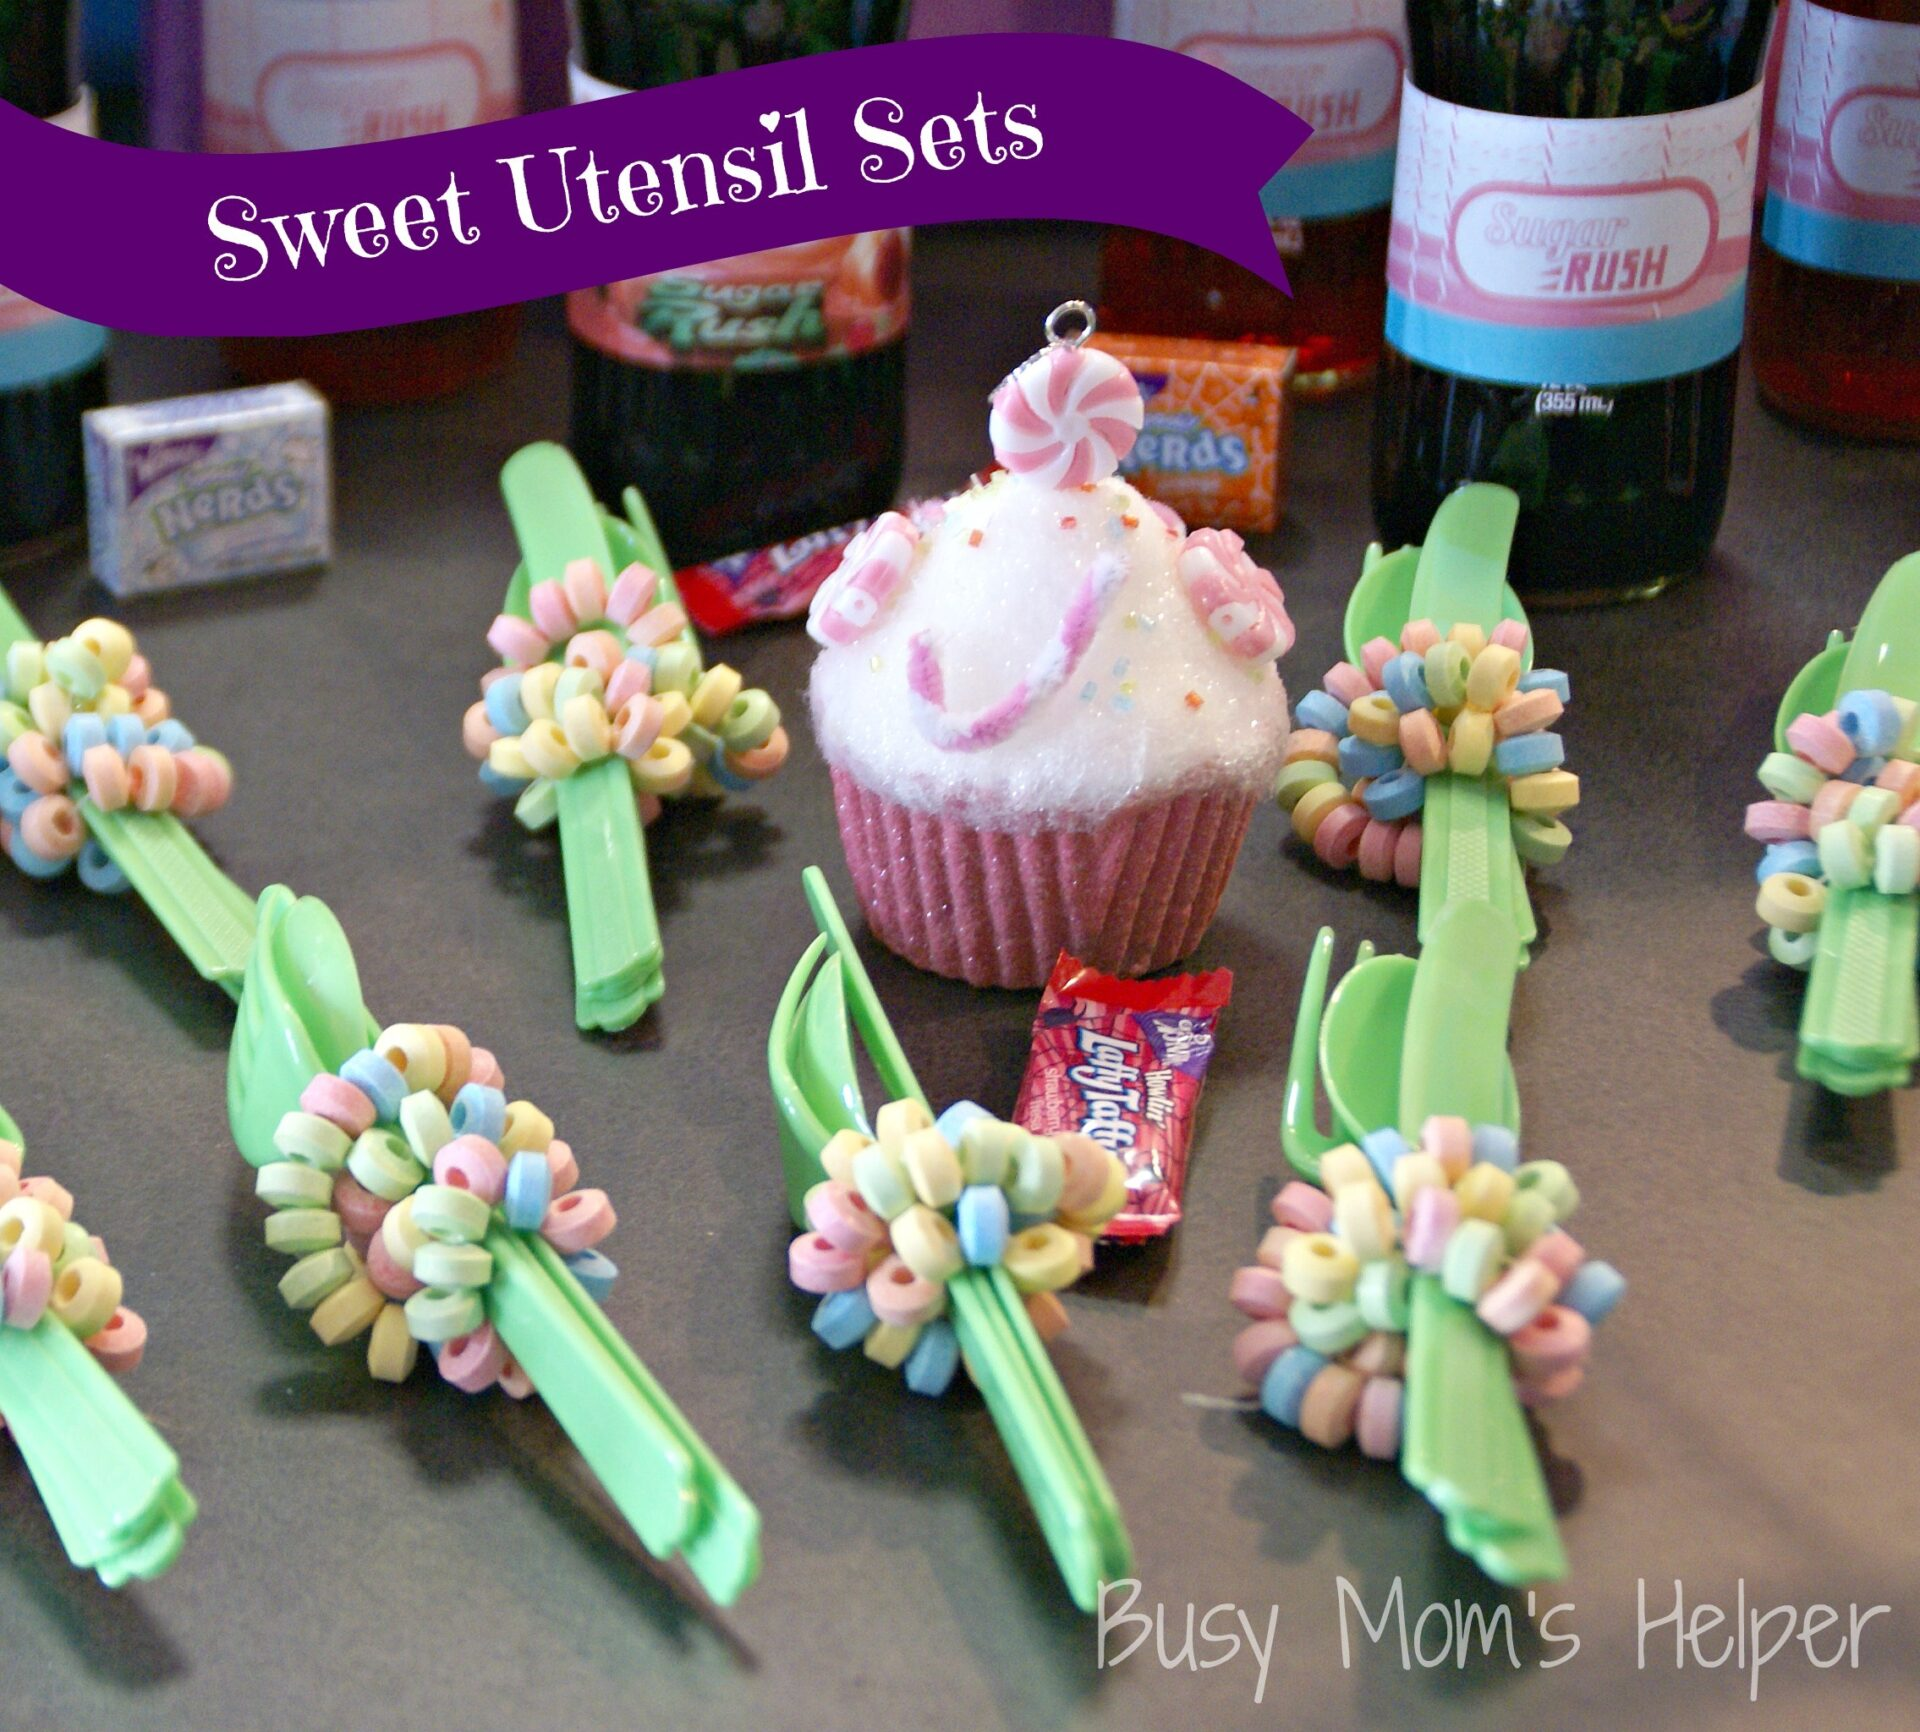 Sugar Rush Party Series: Food, Drink & Goodies / Busy Mom's Helper